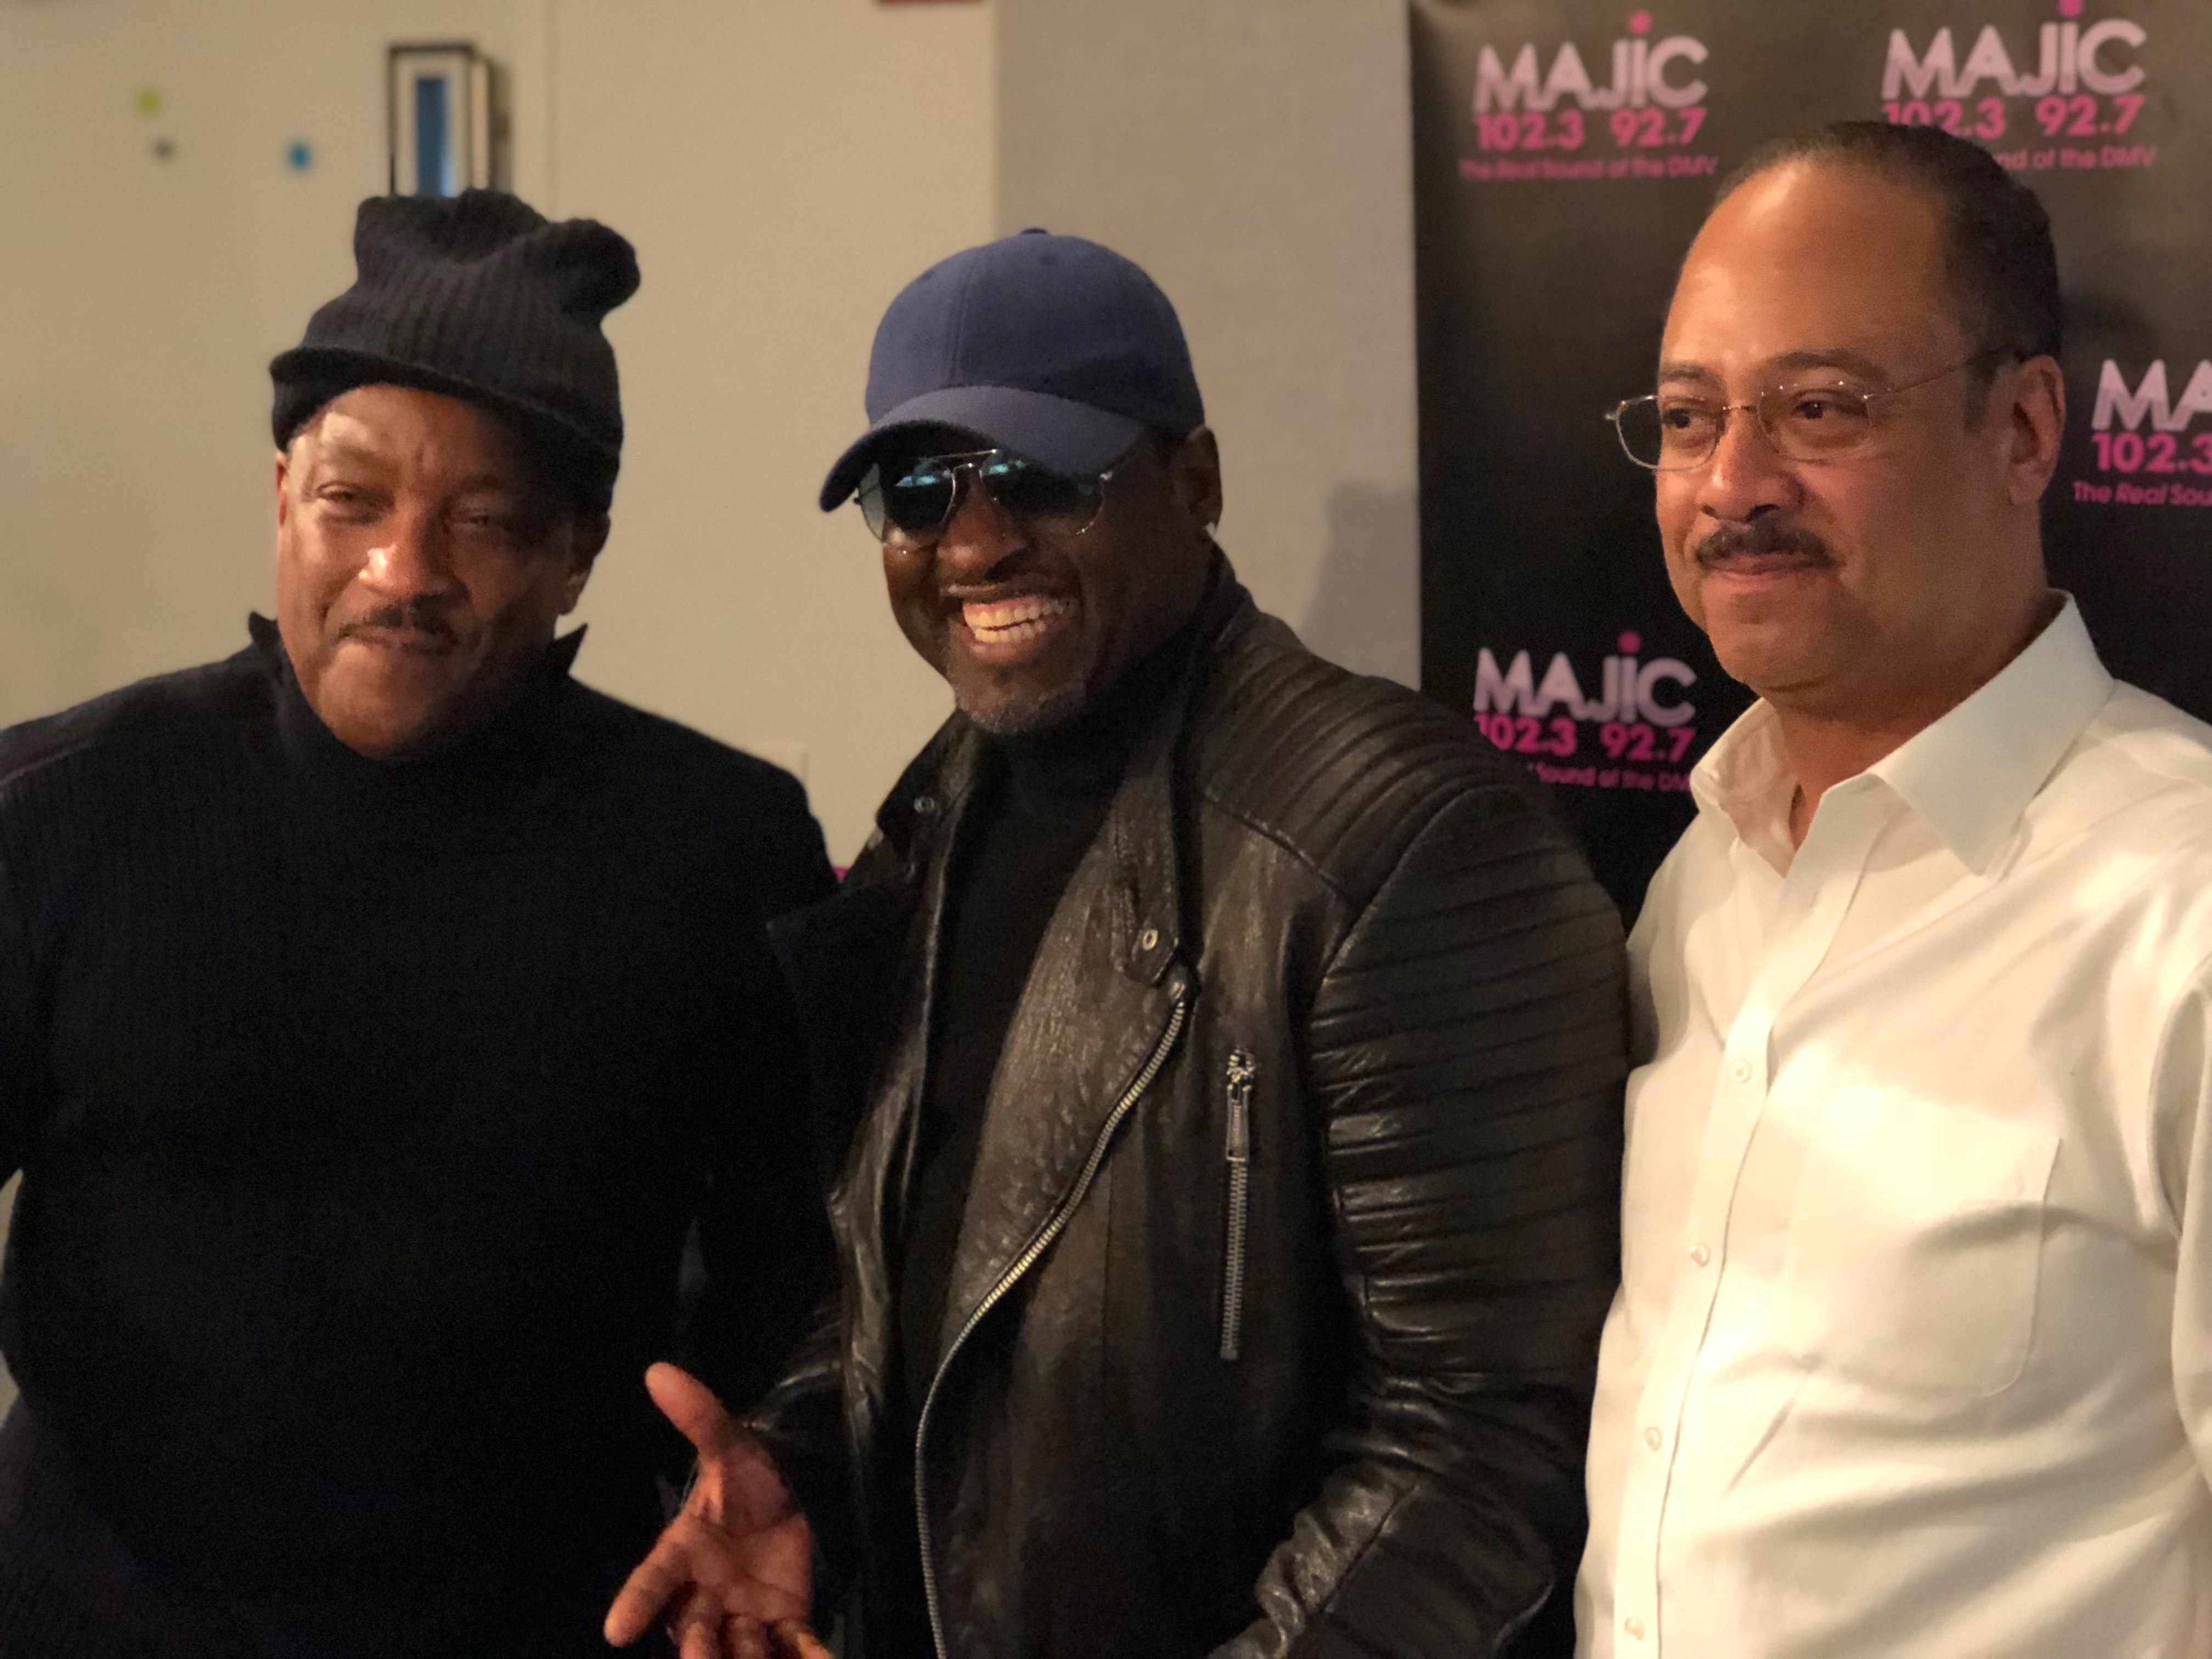 Johnny Gill With Donnie Simpson & Tony Perkins